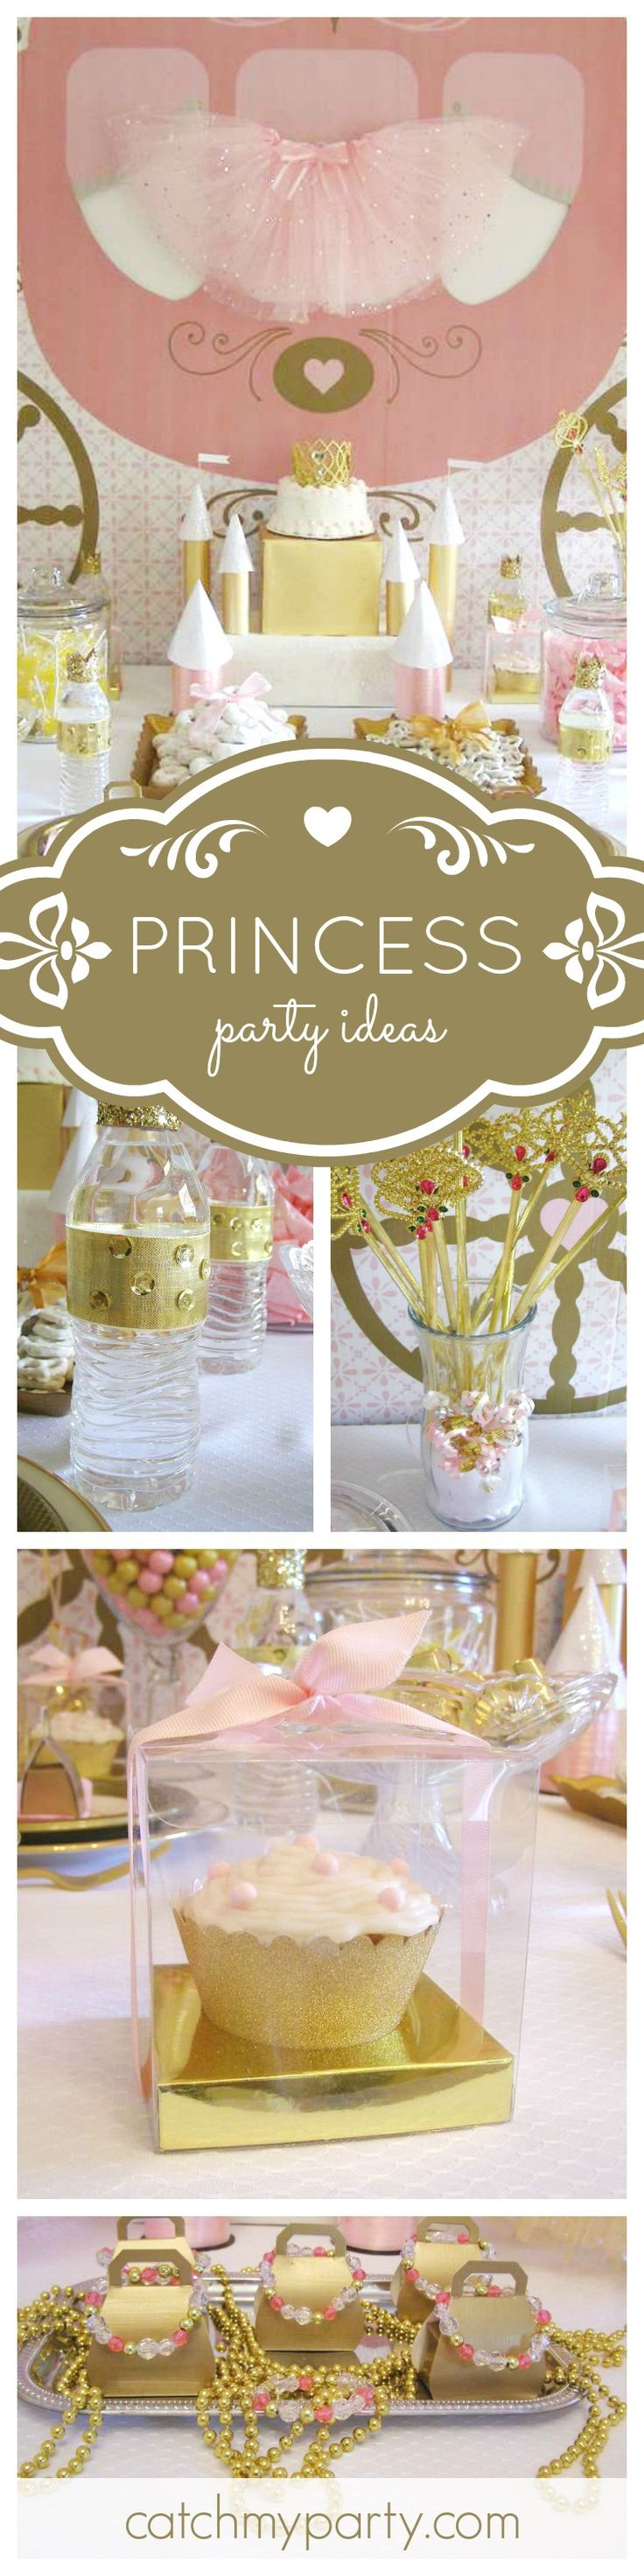 Such a pretty pink and gold Princess Birthday Party. The tutus decorating the tables give it that extra special touch! See more party ideas at CatchMyParty.com